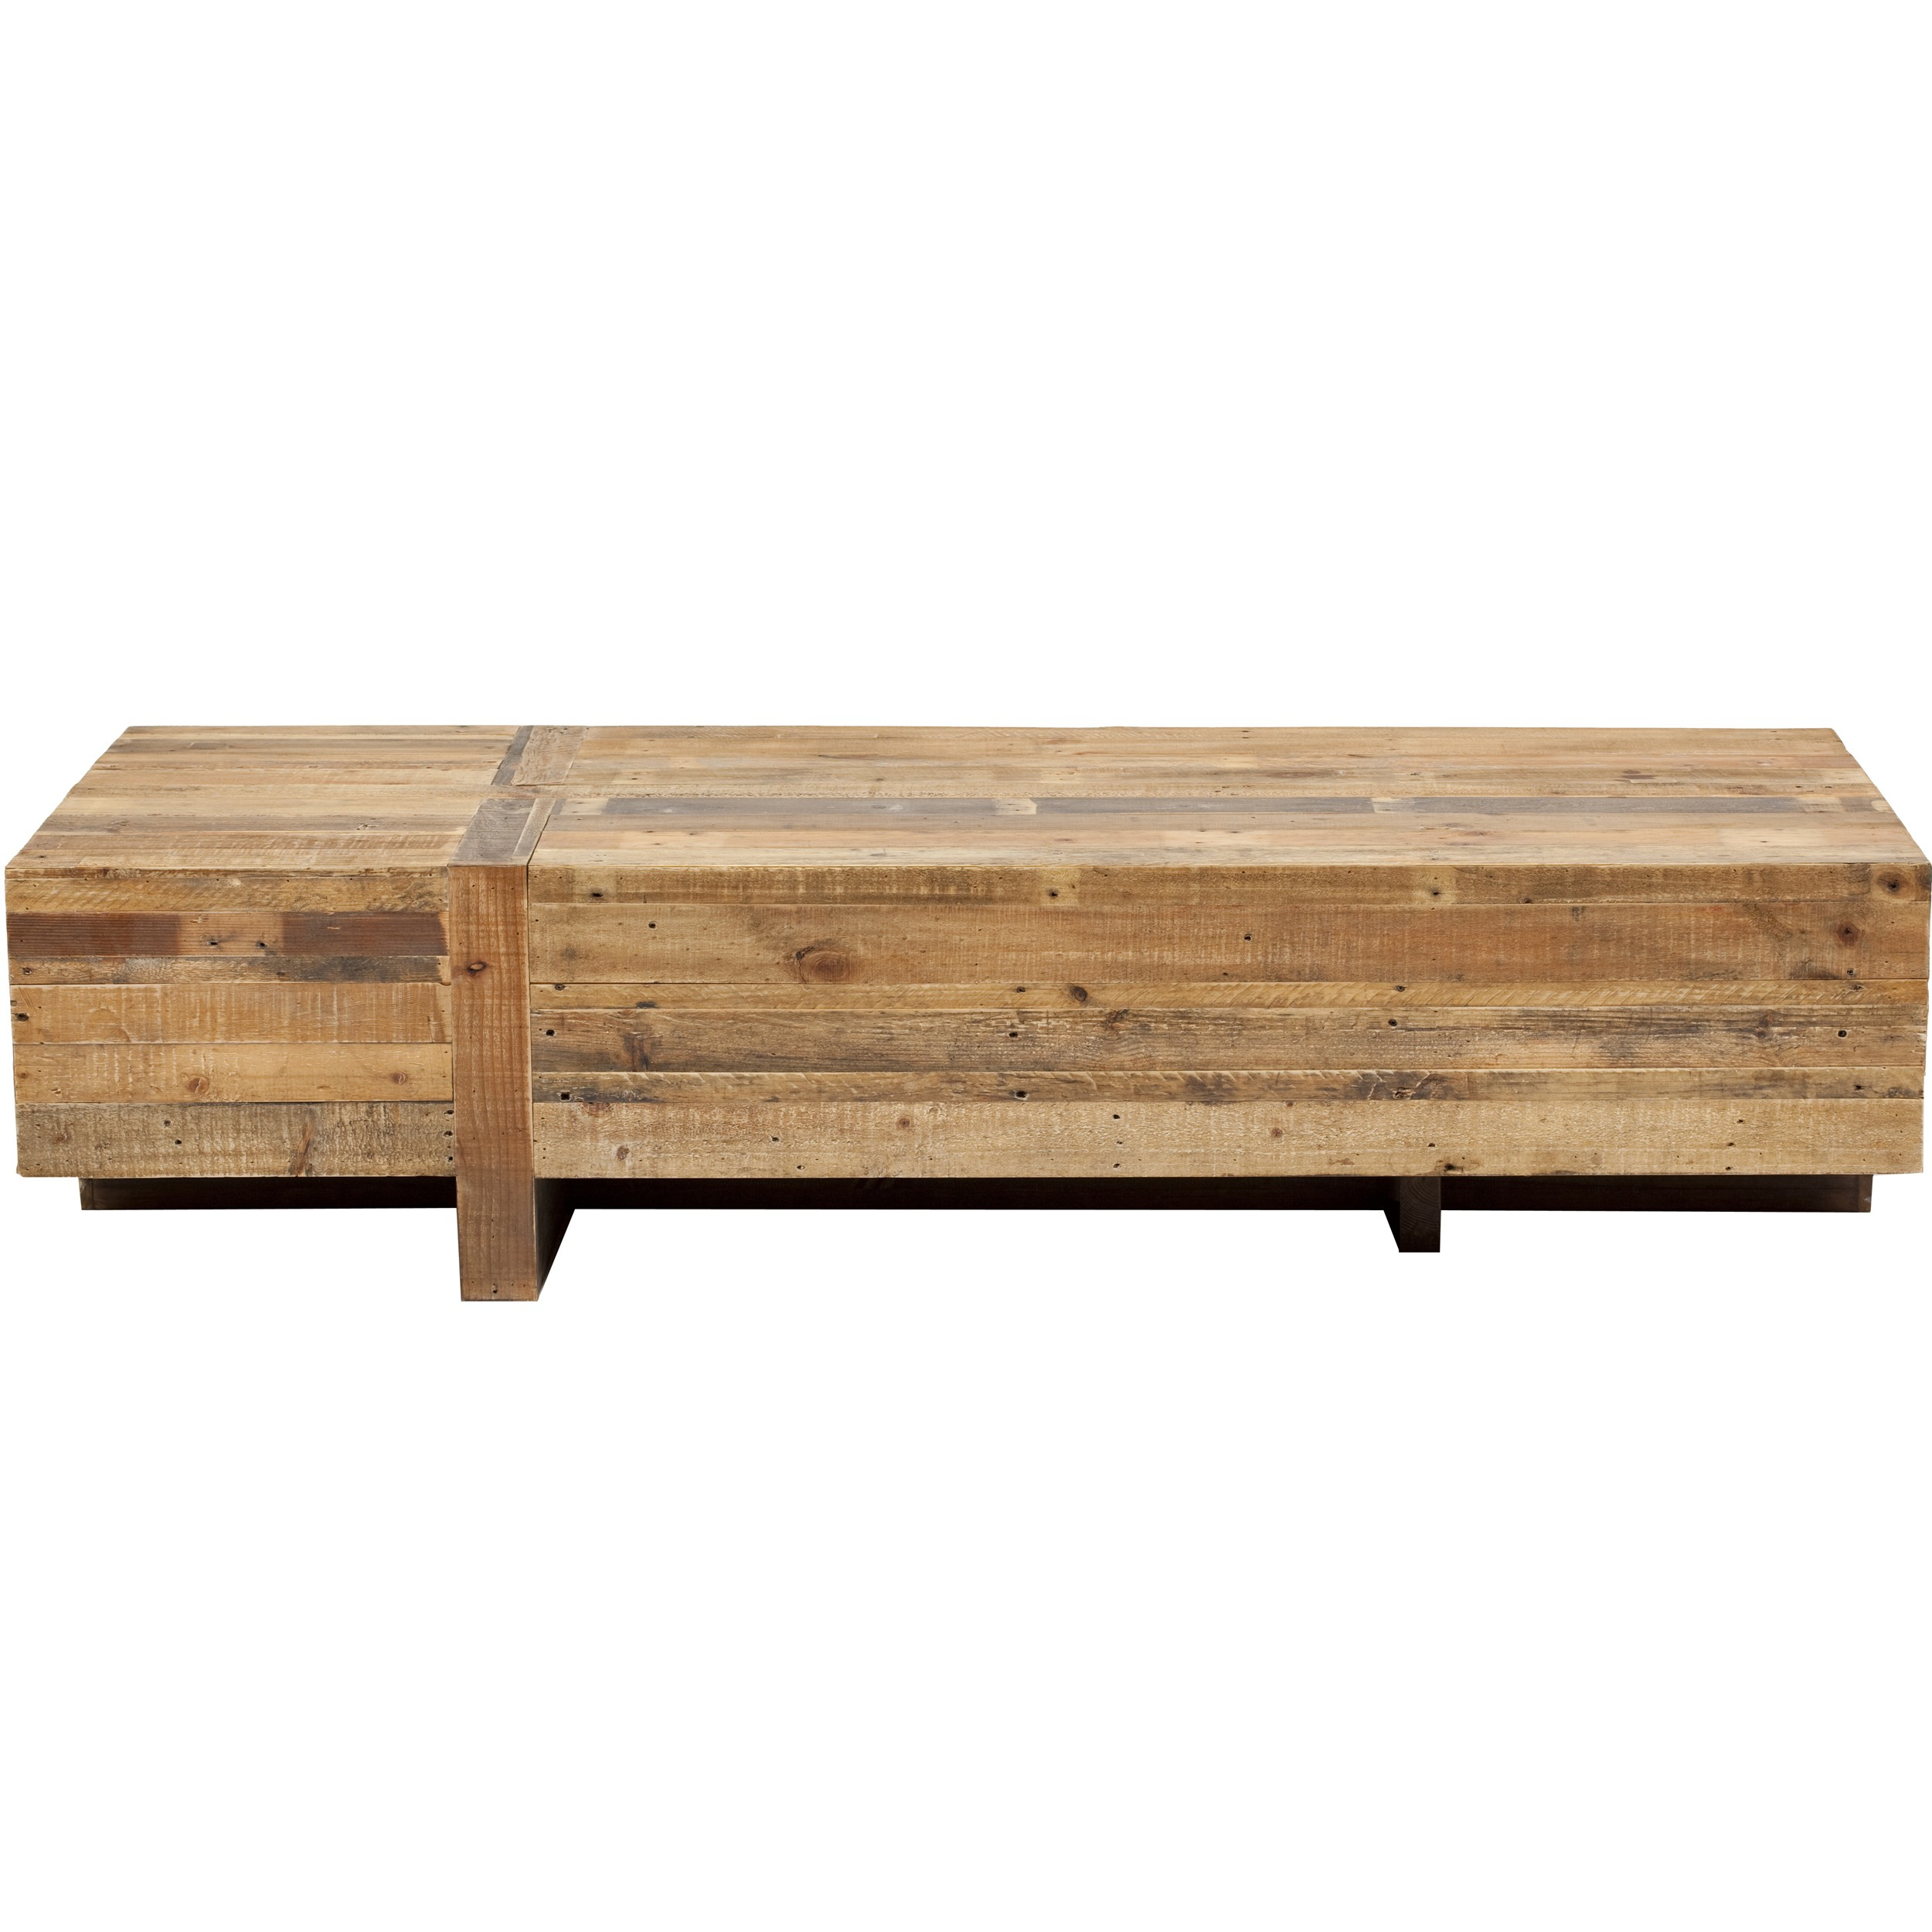 astounding pier coffee table furniture forazhouse endearing round wood imports chiara natural large wooden keru accent cherry outdoor side for bbq christmas tablecloth console